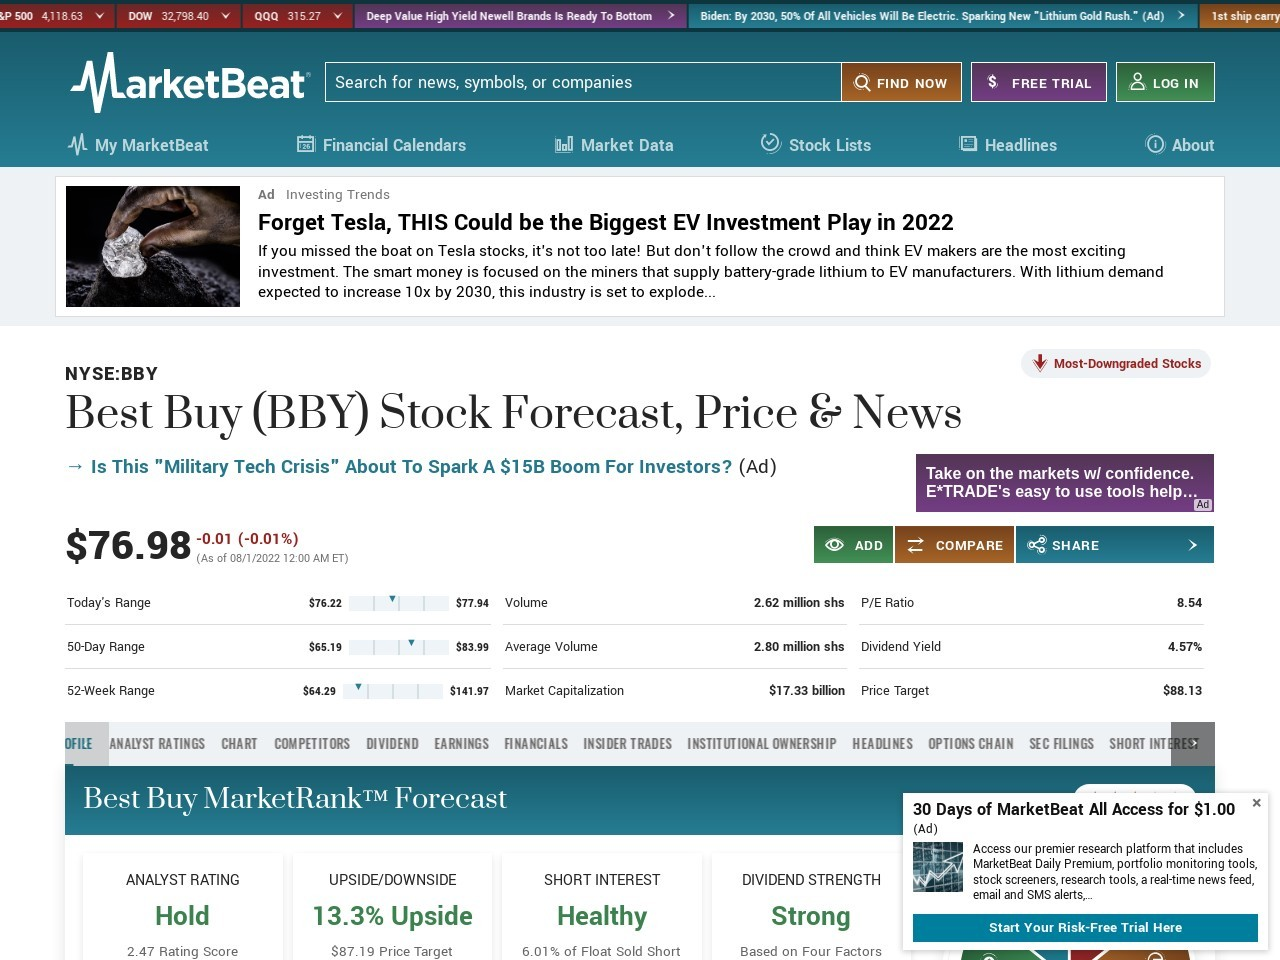 Best Buy (BBY) Cut to Hold at Zacks Investment Research